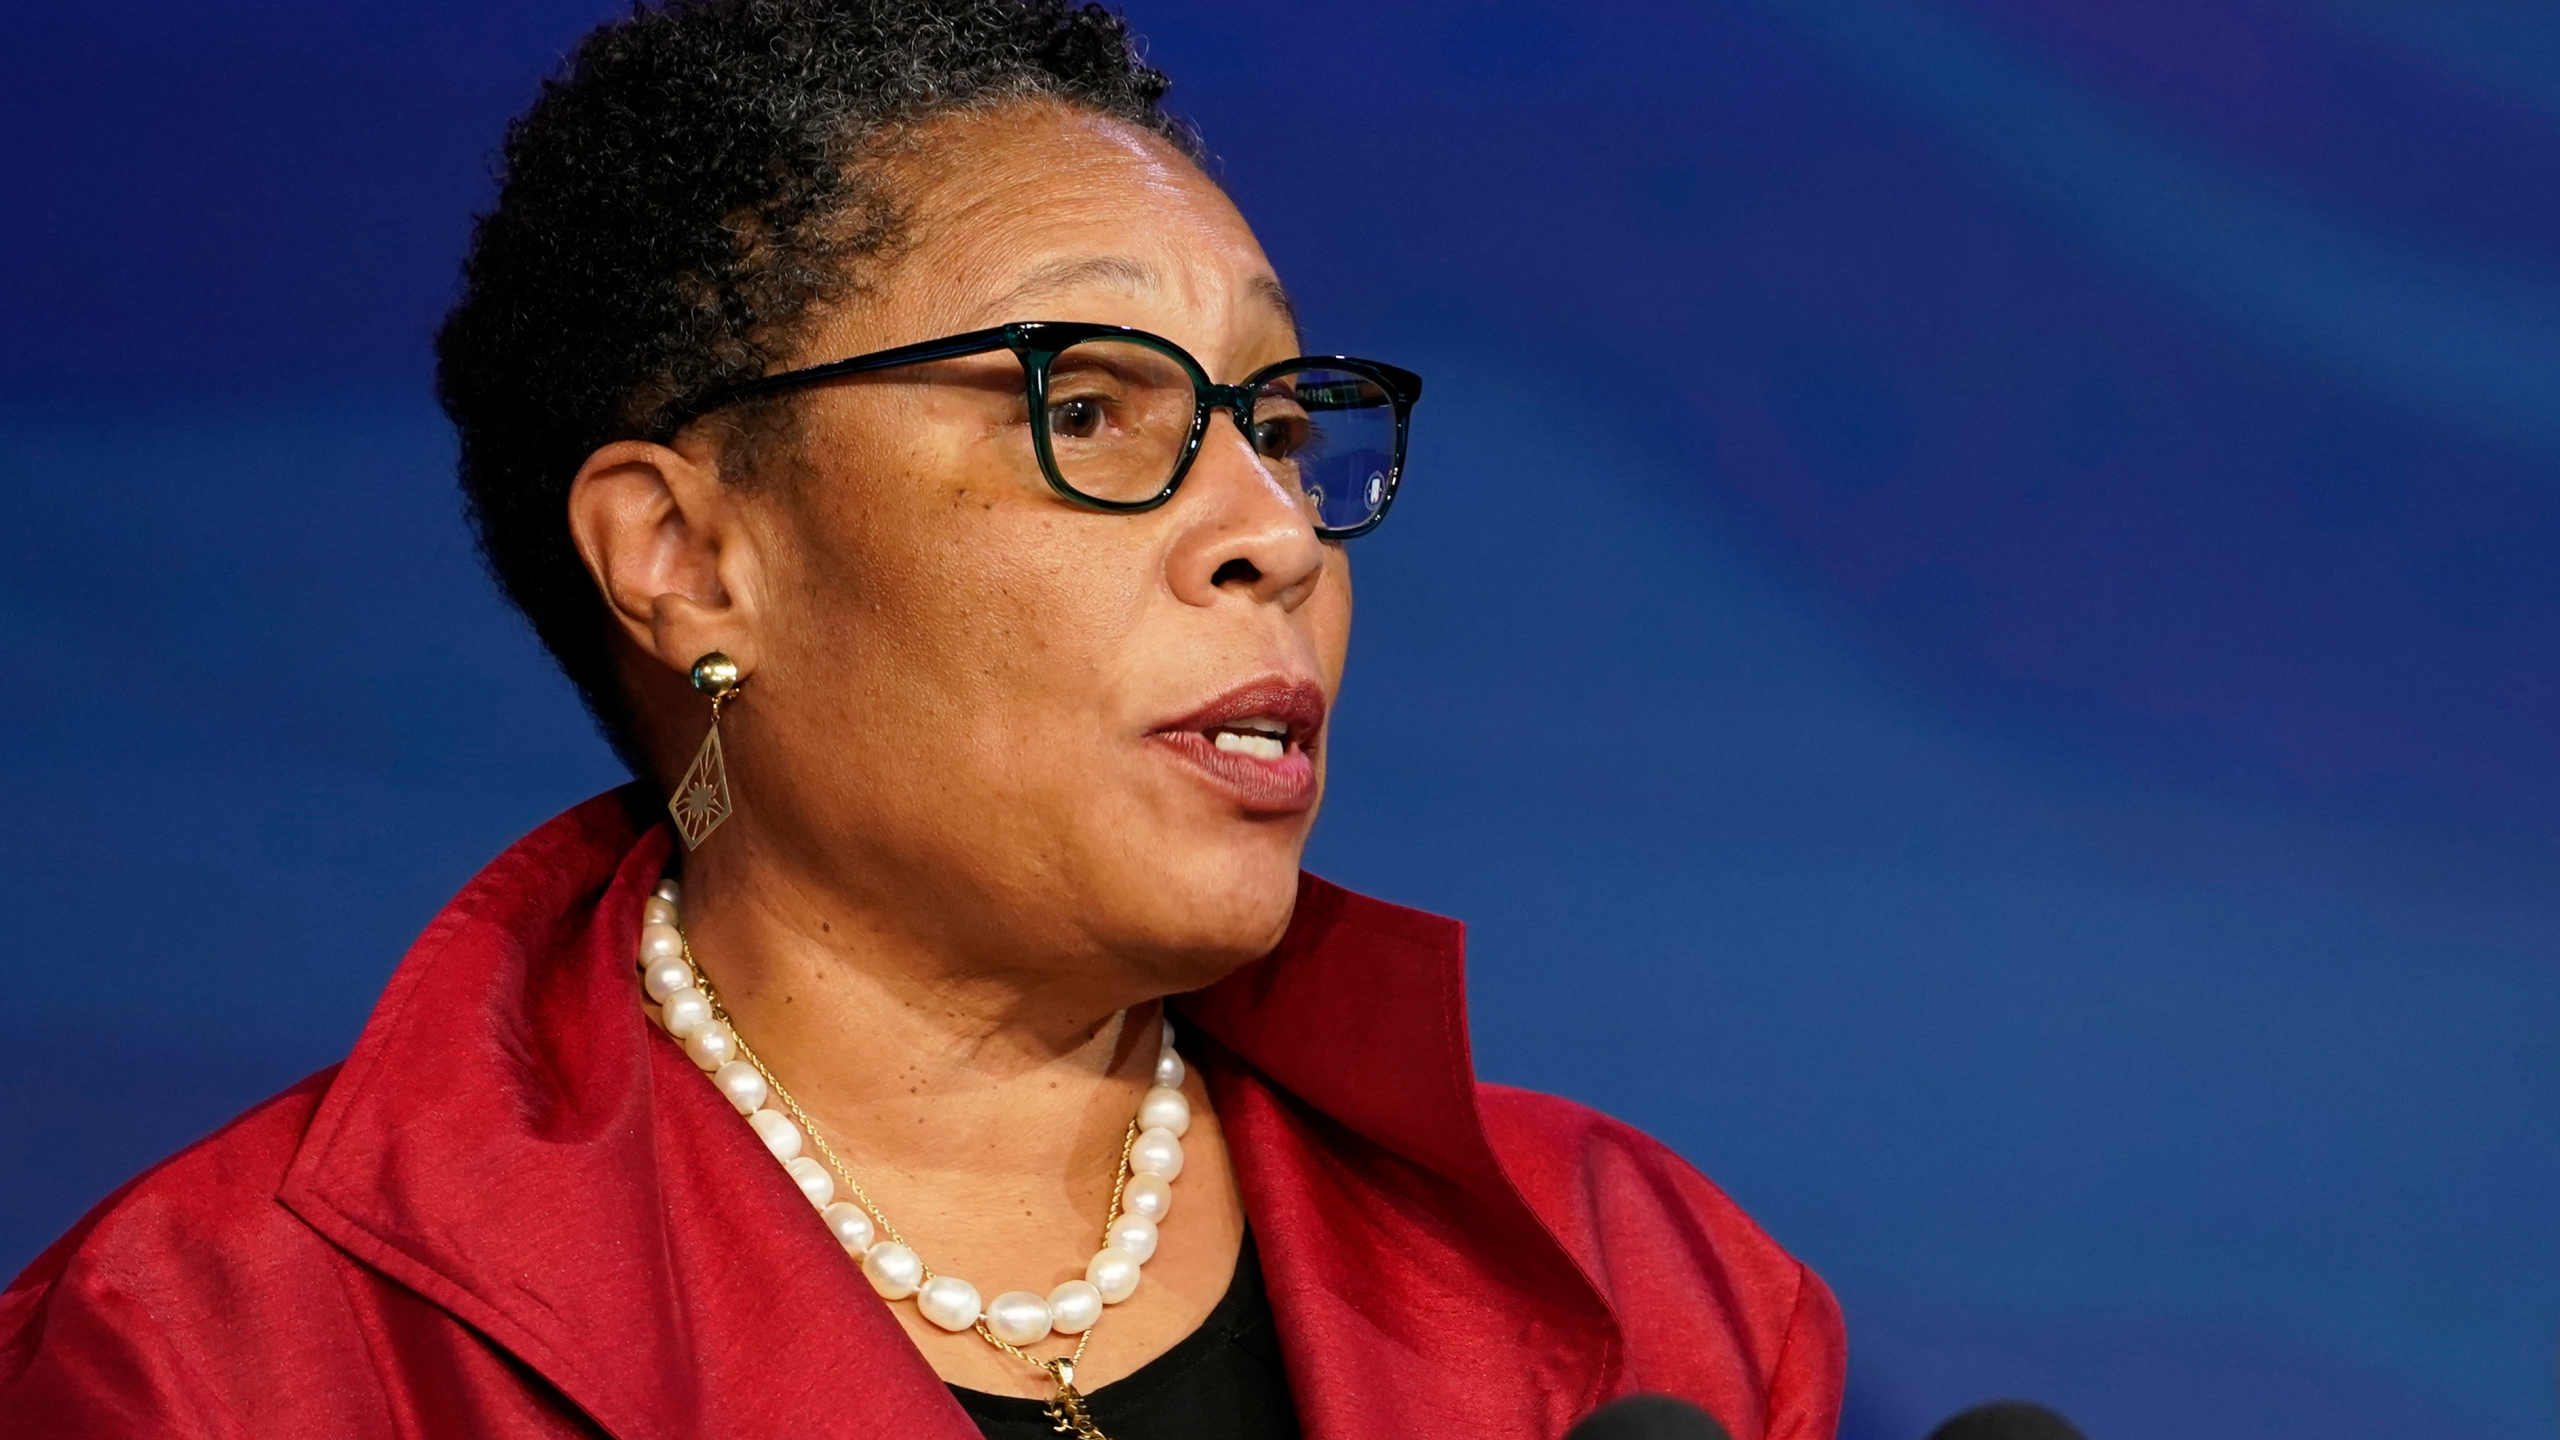 In this Dec. 11, 2020, file photo, then President-elect Joe Biden's nominee for Housing and Urban Development Secretary Rep. Marcia Fudge, D-Ohio speaks during an event at The Queen theater in Wilmington, Del. (Susan Walsh/Associated Press)